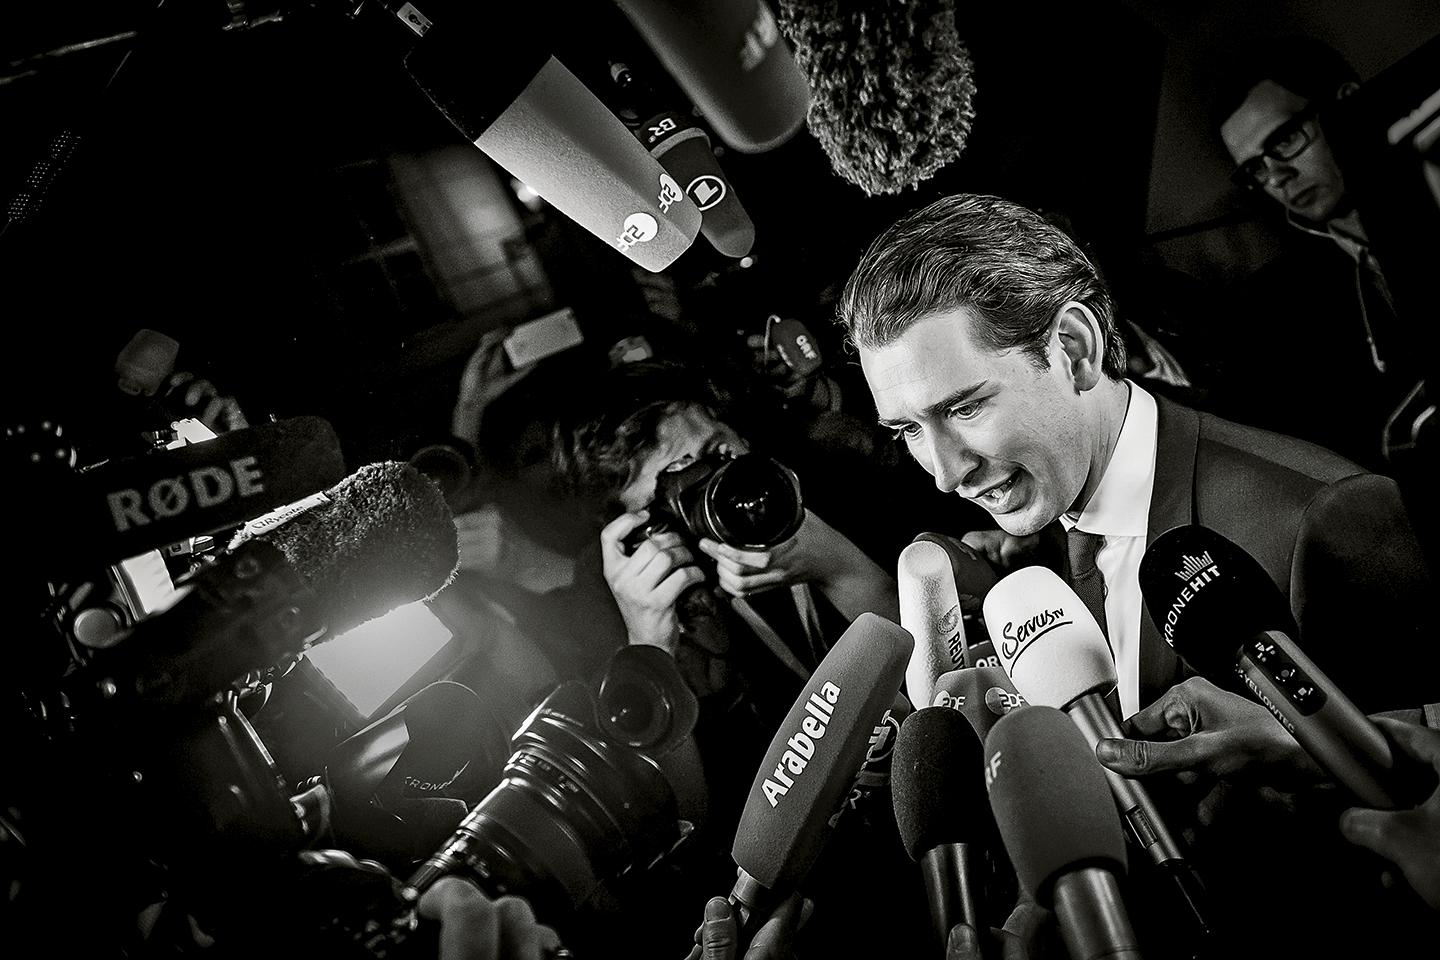 Critics of Kurz warn that his slick manner and appearance—likened by one young Vienna resident to American Psycho's Patrick Bateman—is blinding fans to his real goal: eroding parliamentary democracy.